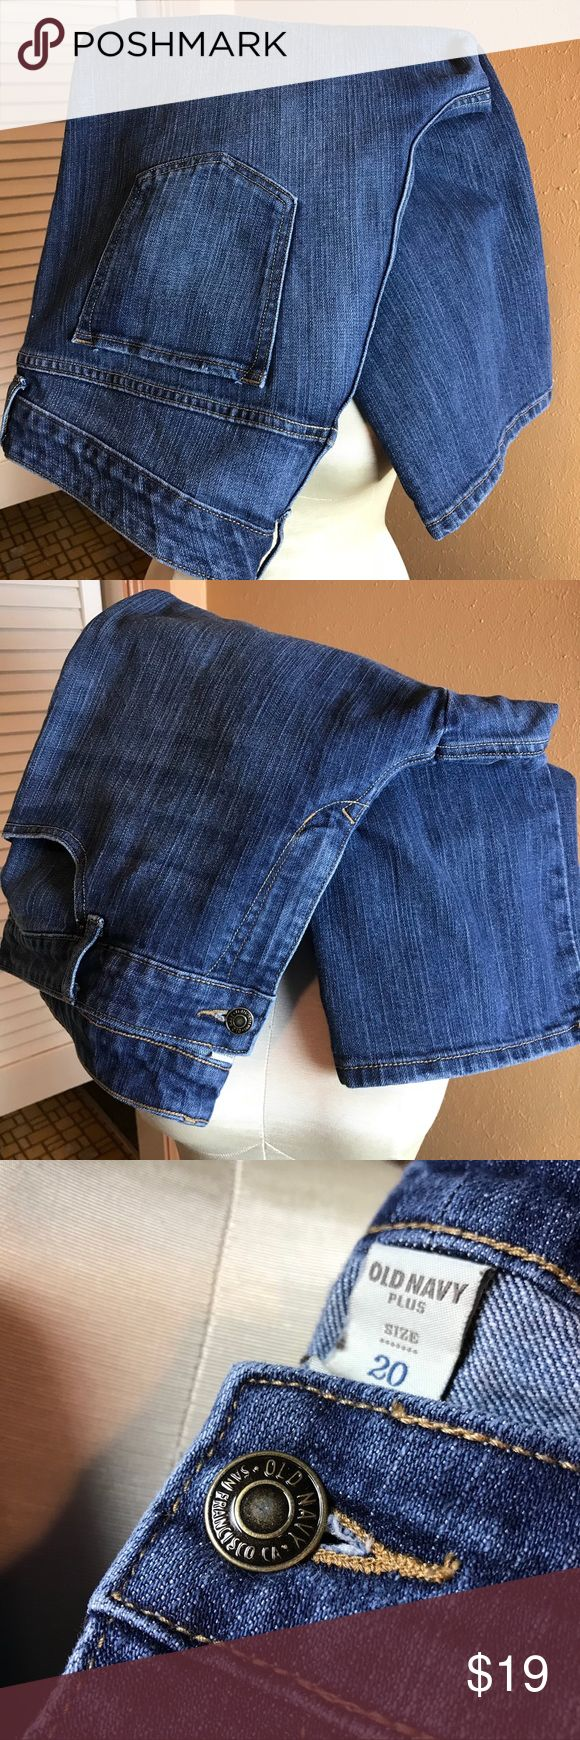 "Old Navy Women's Cropped Ankle Jeans 20 EUC! Cute trendy 80% cotton, 19% polyester, 1% spandex. Waist  21"", Inseam 24"". Excellent condition. Old Navy Jeans Ankle & Cropped"